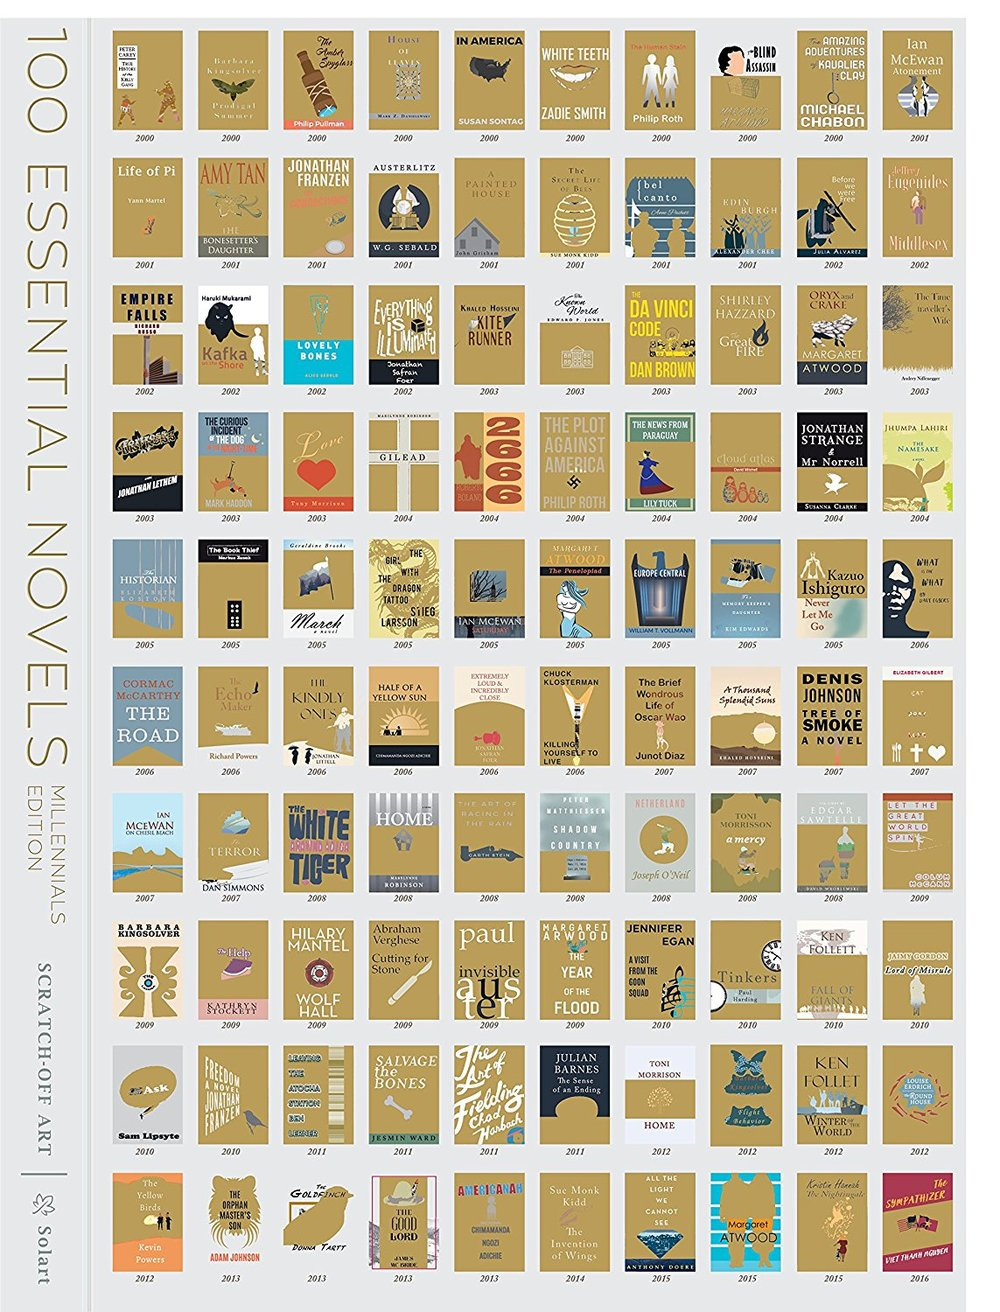 100 essential novels scratch-off poaster.jpg